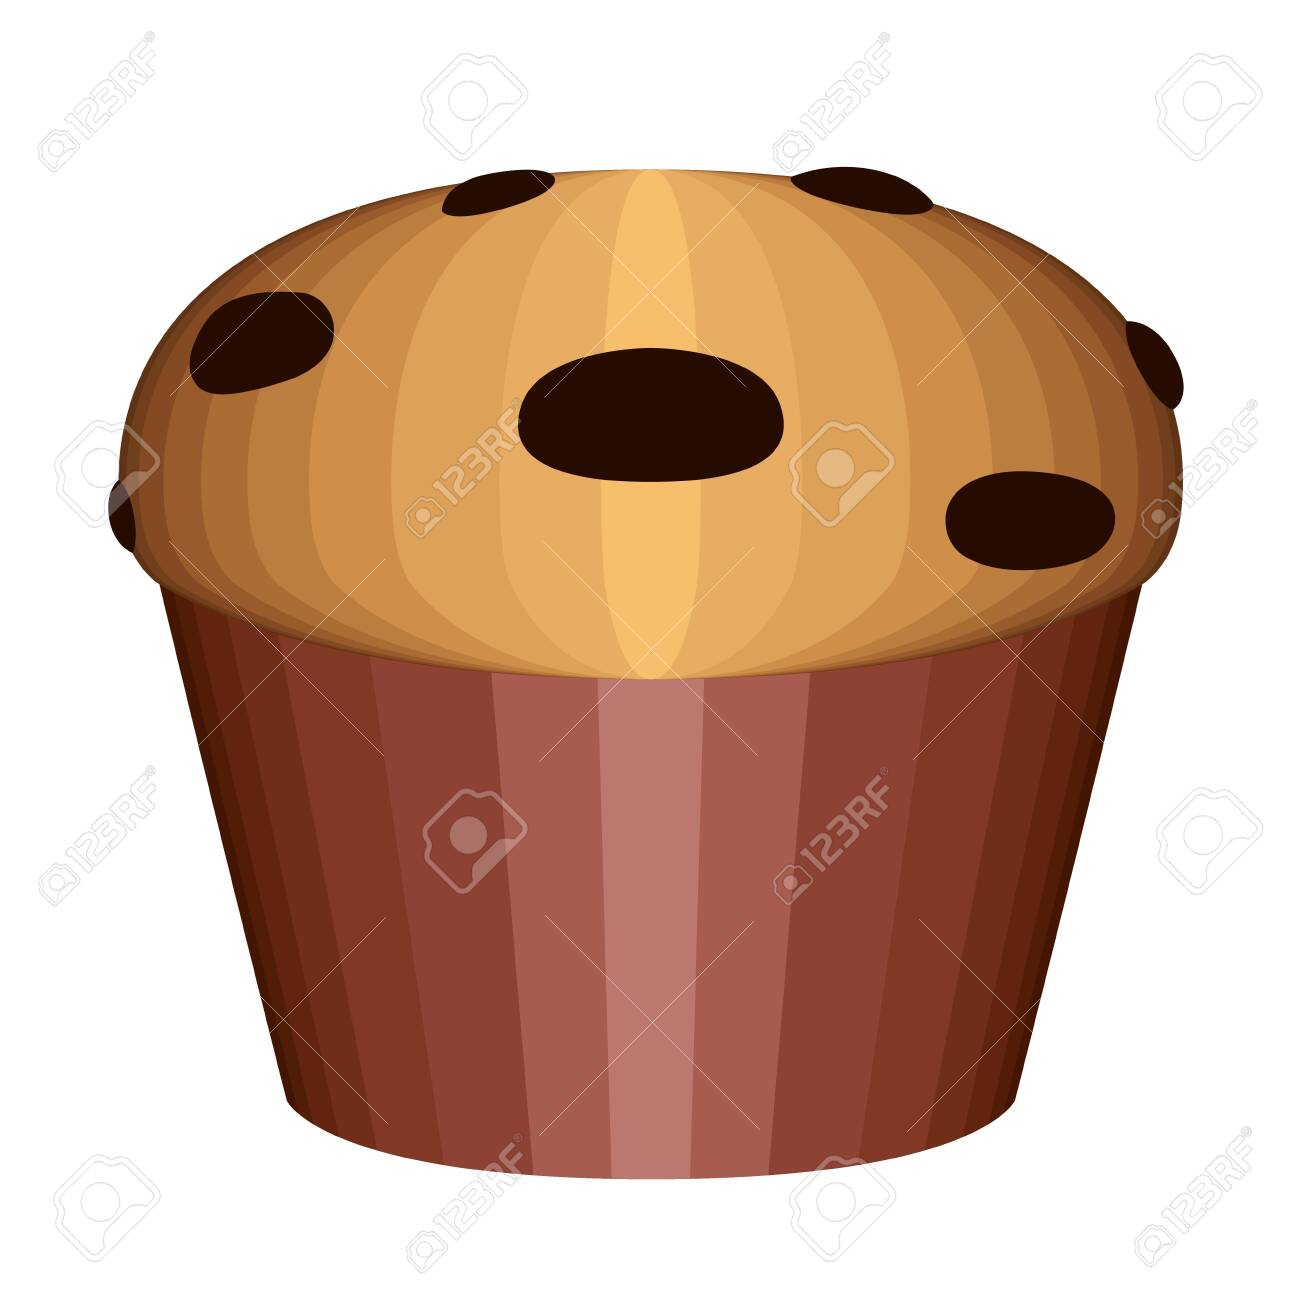 Muffin With Chocolate Chips Vector Illustration Design Royalty Free Cliparts Vectors And Stock Illustration Image 123373898